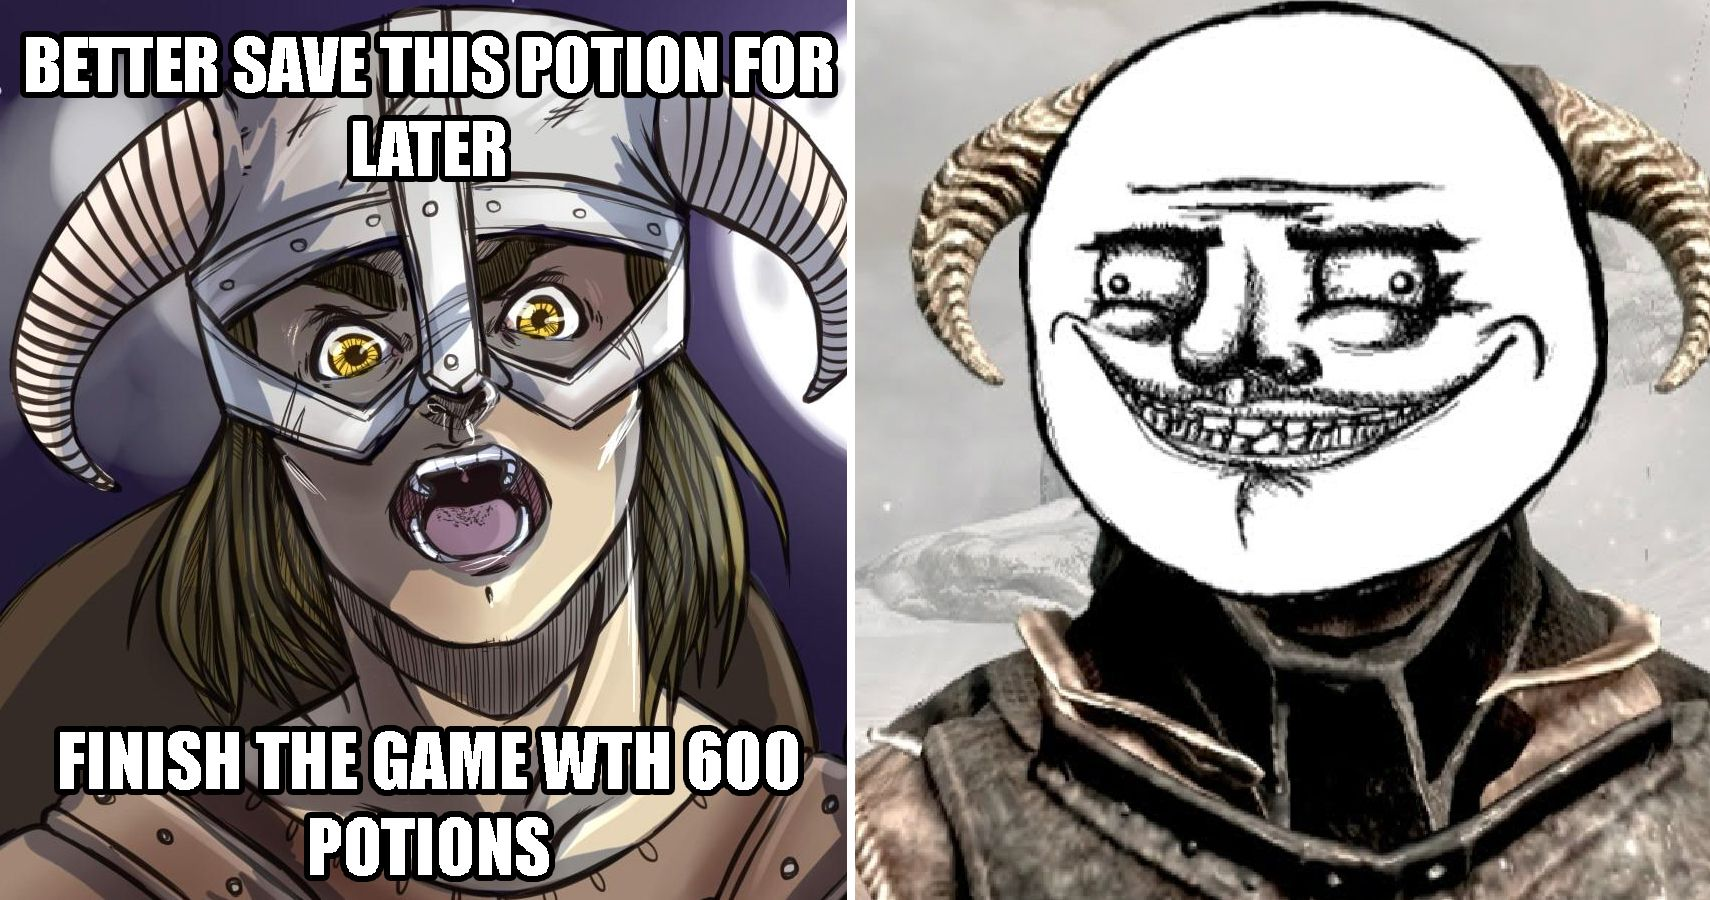 25 Hilariously Dank Skyrim Memes Only True Fans Will Understand